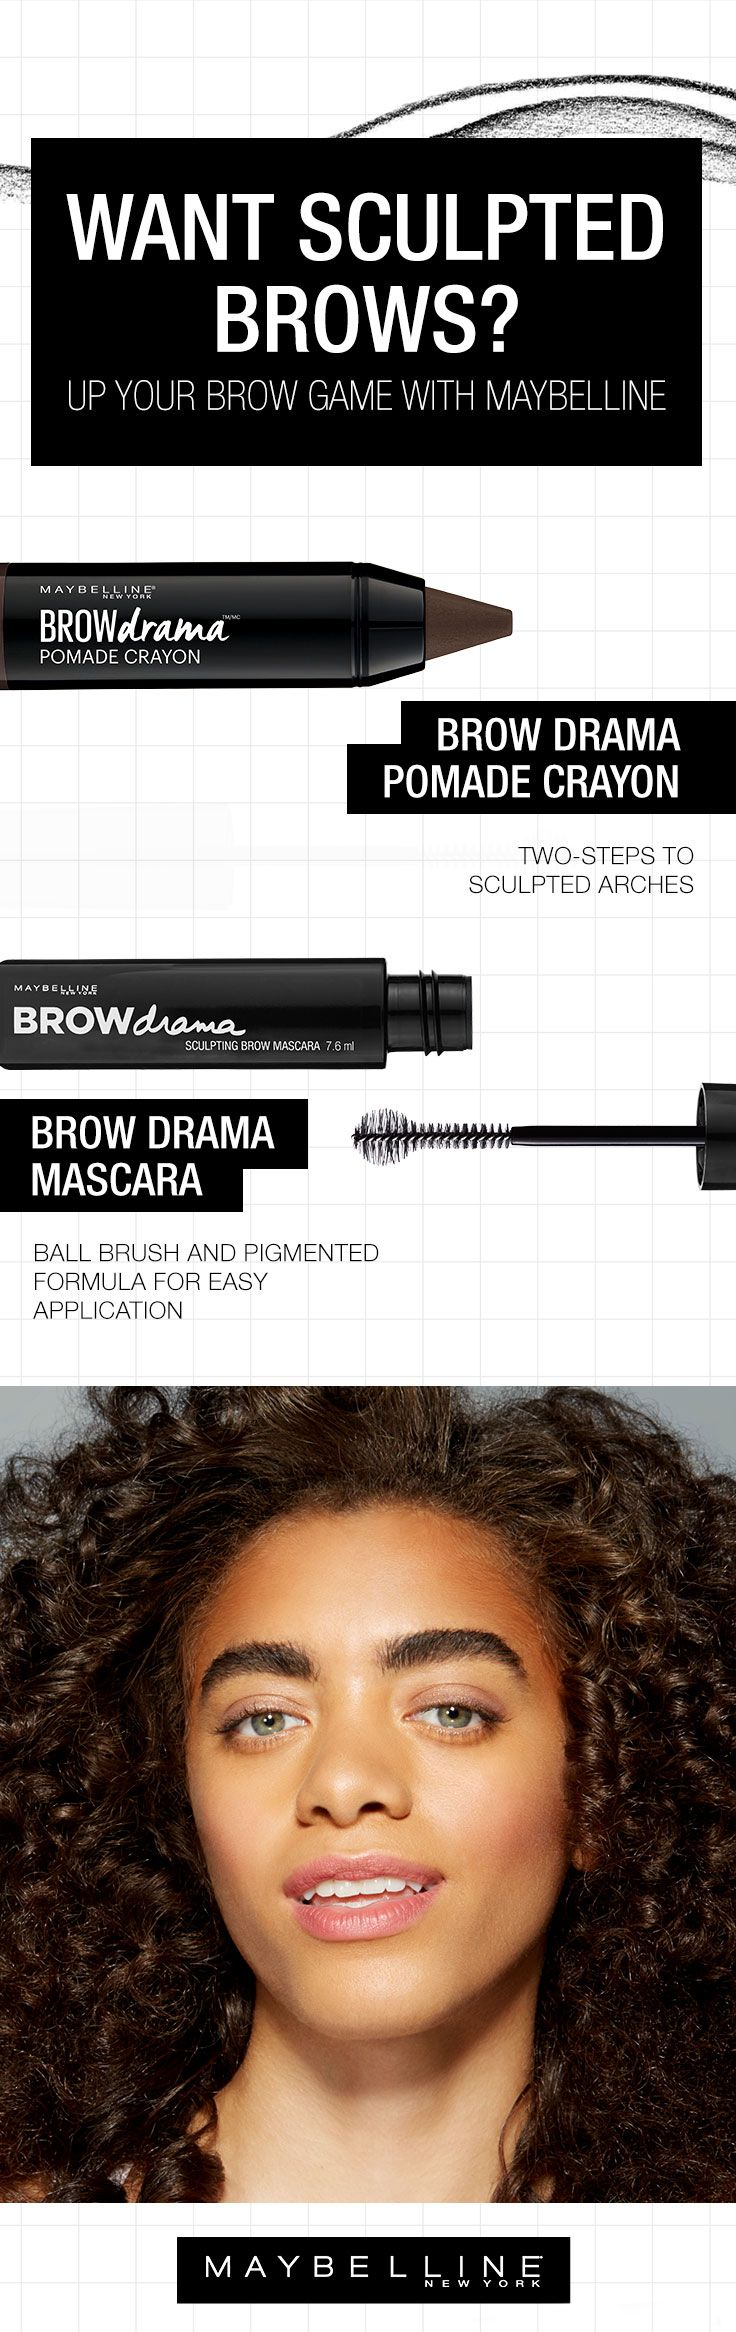 Don't let unruly brows rule you. Sculpt them with a little help from Maybelline. This Maybelline eyebrow guide provides the easy solution for getting sculpted brows to step up your overall beauty look. Try our Brow Drama Sculpting Mascara for a 2 step process to get sculpted arches or Brow Drama Pomade Crayon for mastering all your strays and fly aways with a ball brush and pigmented formula for an easy to use application.